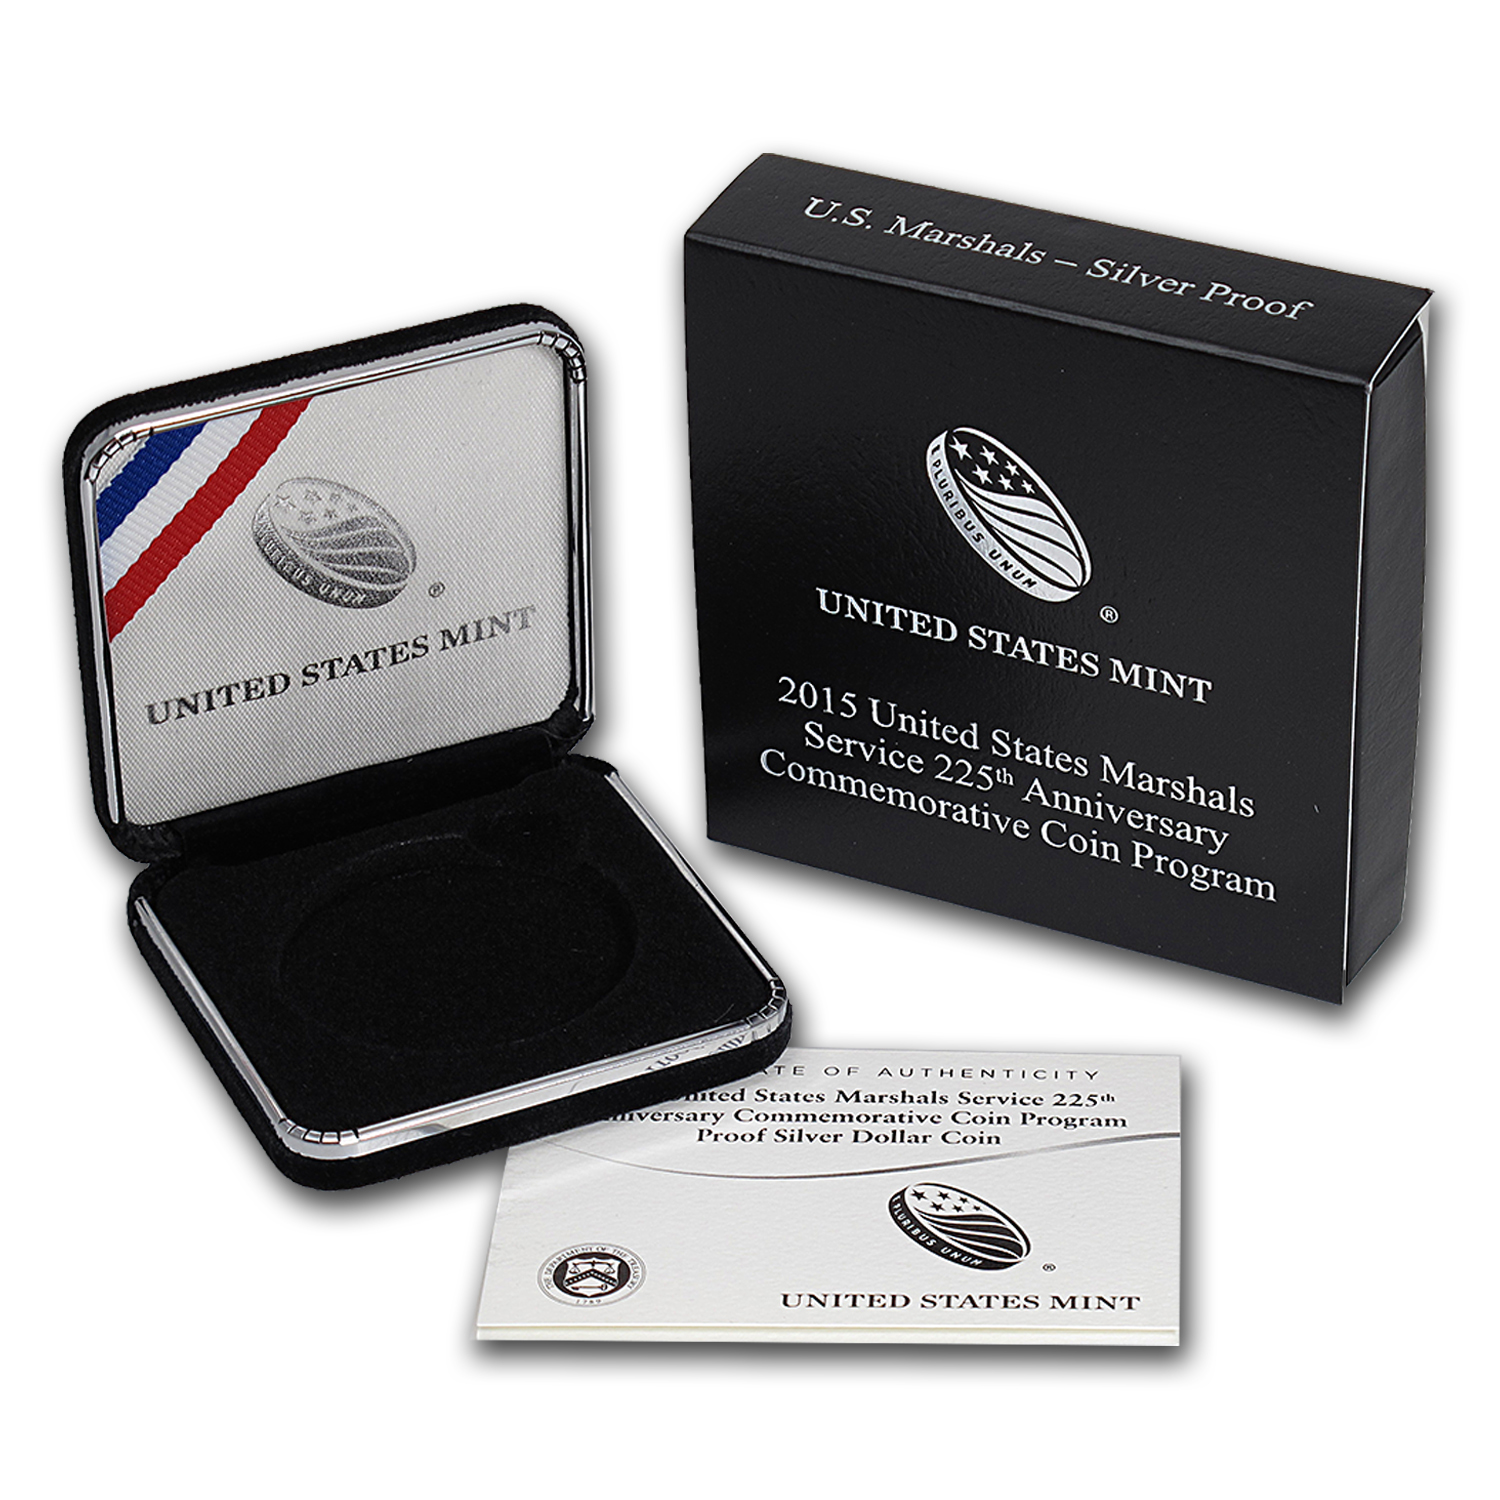 OGP Box & COA - 2015 U.S. Mint U.S. Marshals Silver Proof Coin